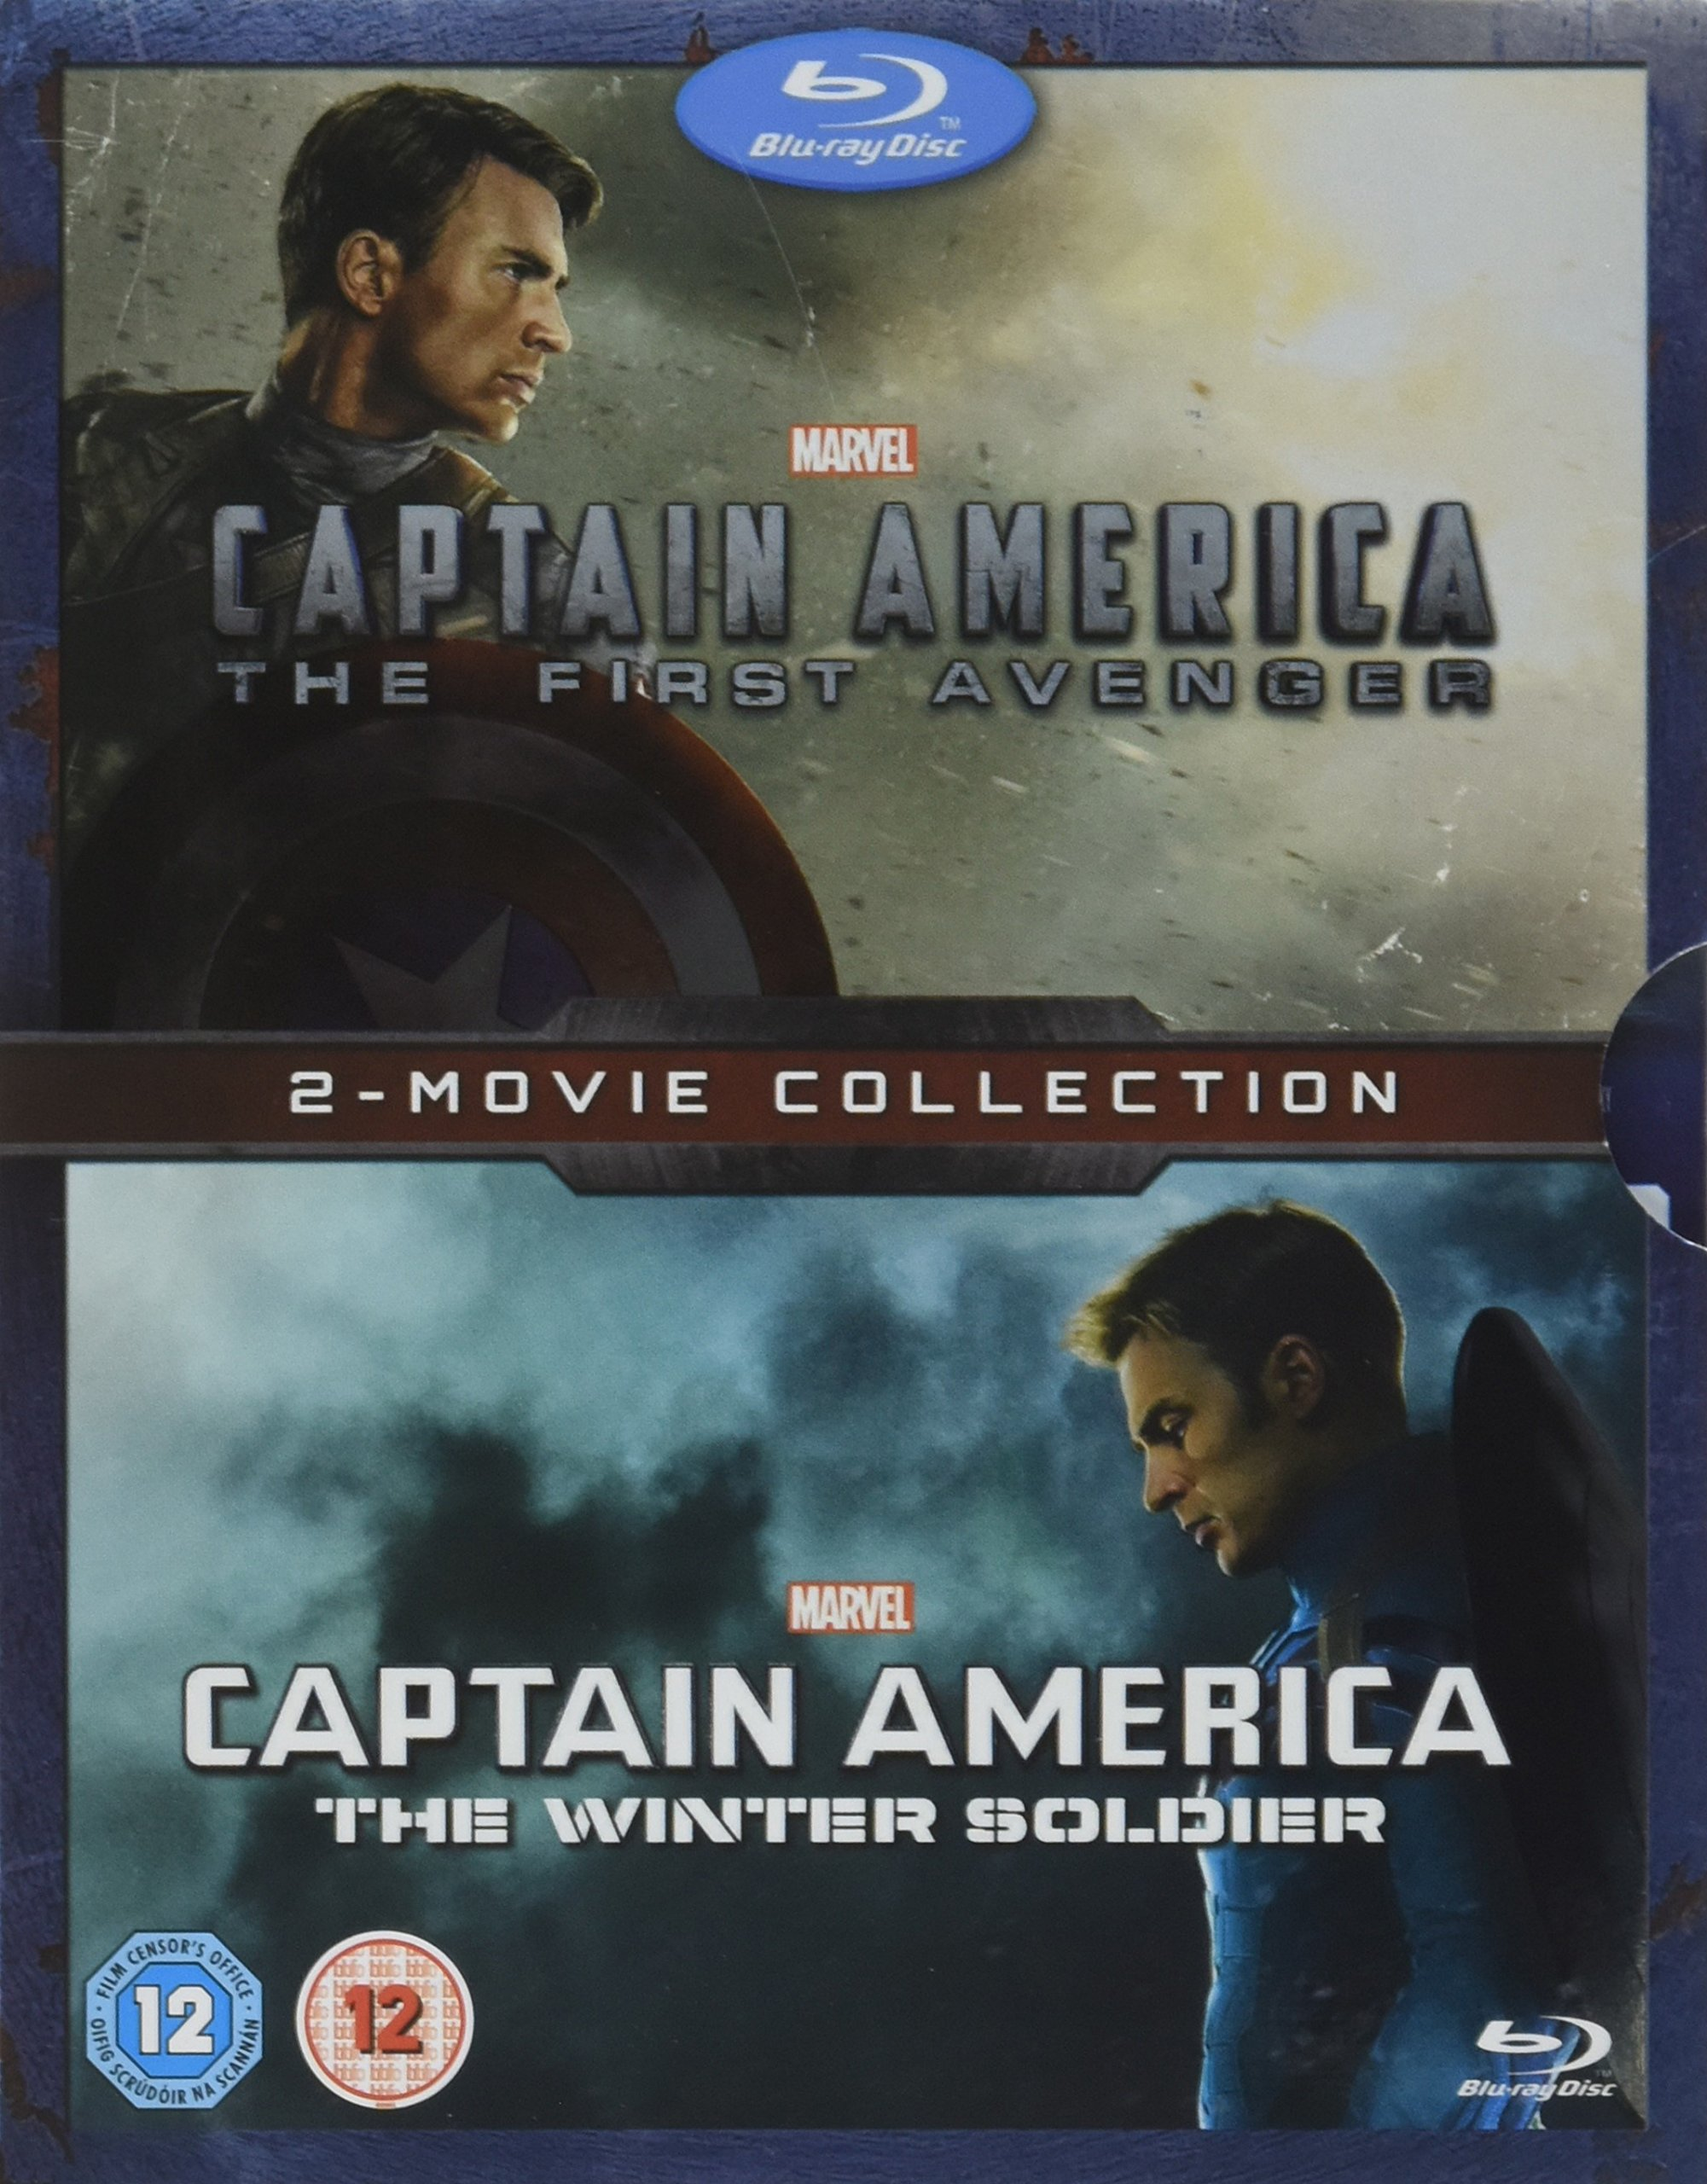 Captain America: 2-Movie Collection (The First Avenger / The Winter Soldier) [Blu-ray] by Walt Disney Studios Home Entertainment